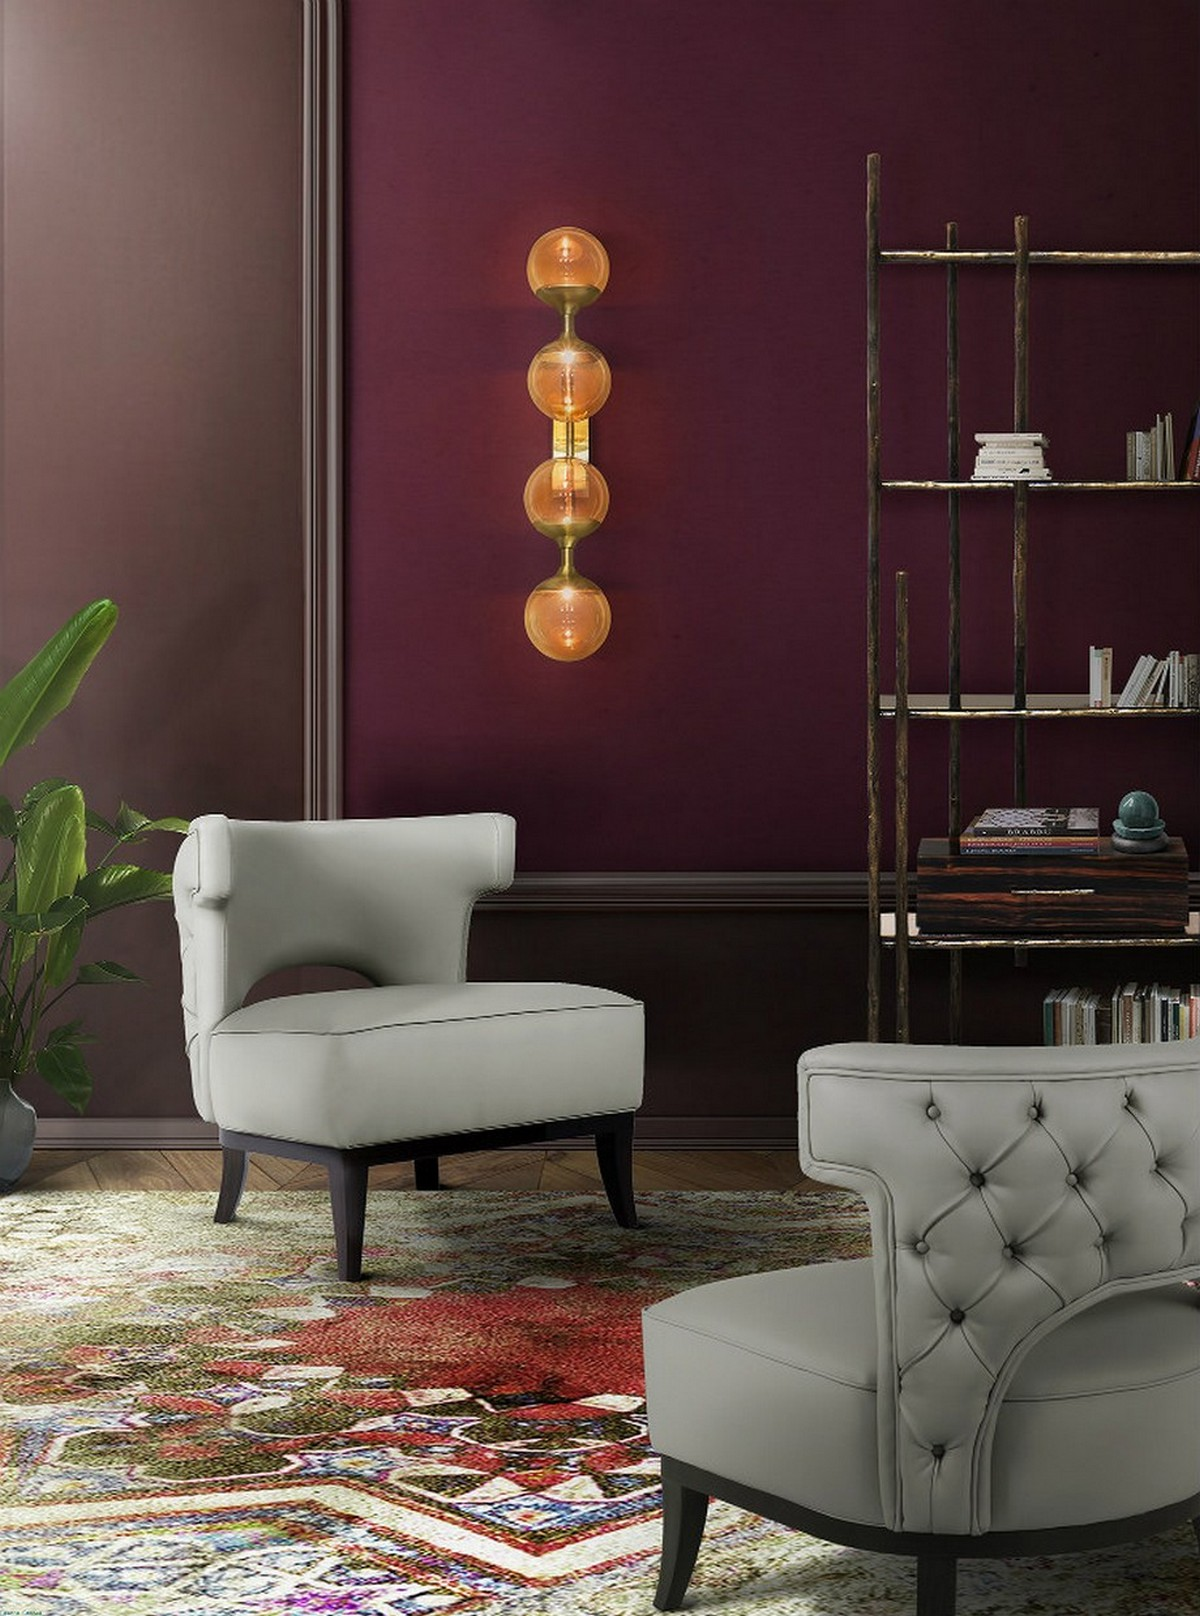 Exclusive Lighting Designs You Will Love (Part III) exclusive lighting designs Exclusive Lighting Designs You Will Love (Part III) syrad wall lamp2